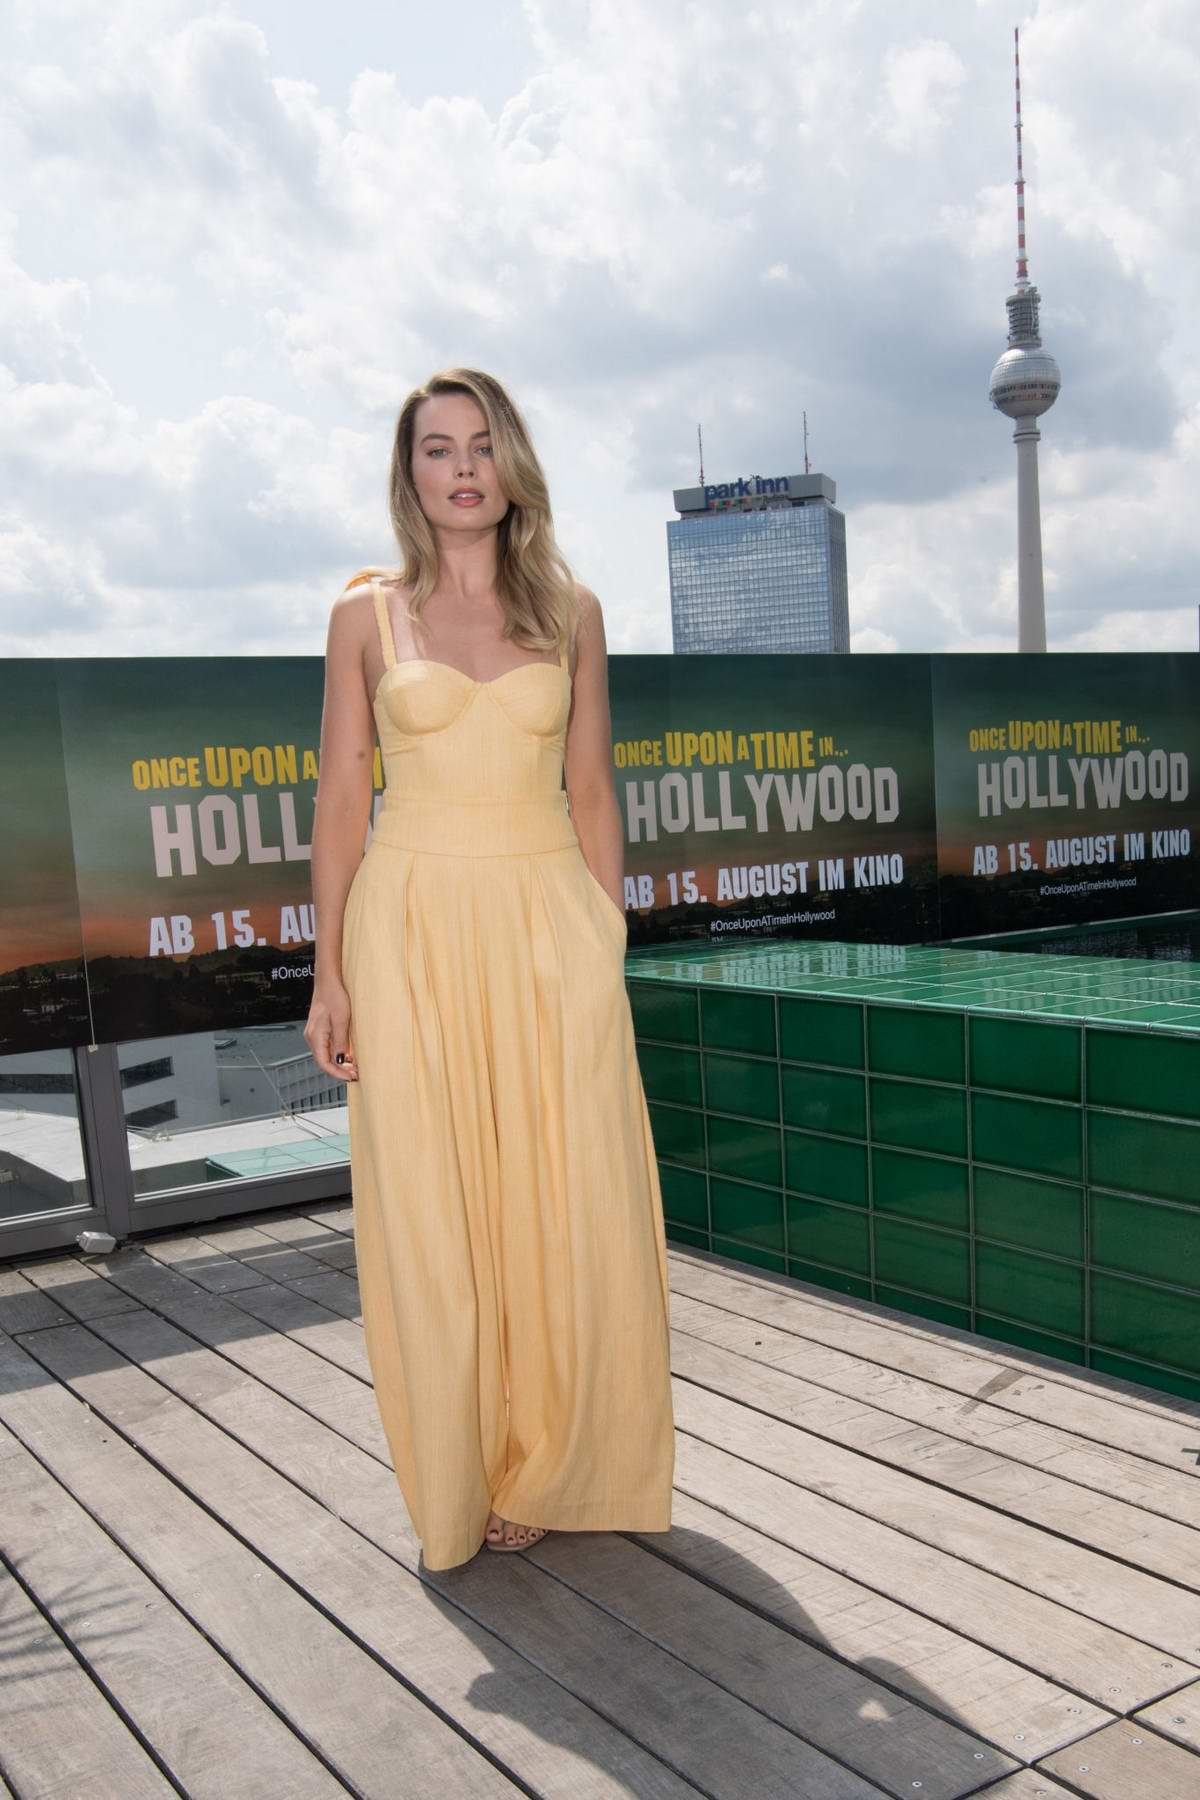 Margot Robbie attends a photocall ahead of the German premiere of 'Once upon a time in Hollywood' in Berlin, Germany